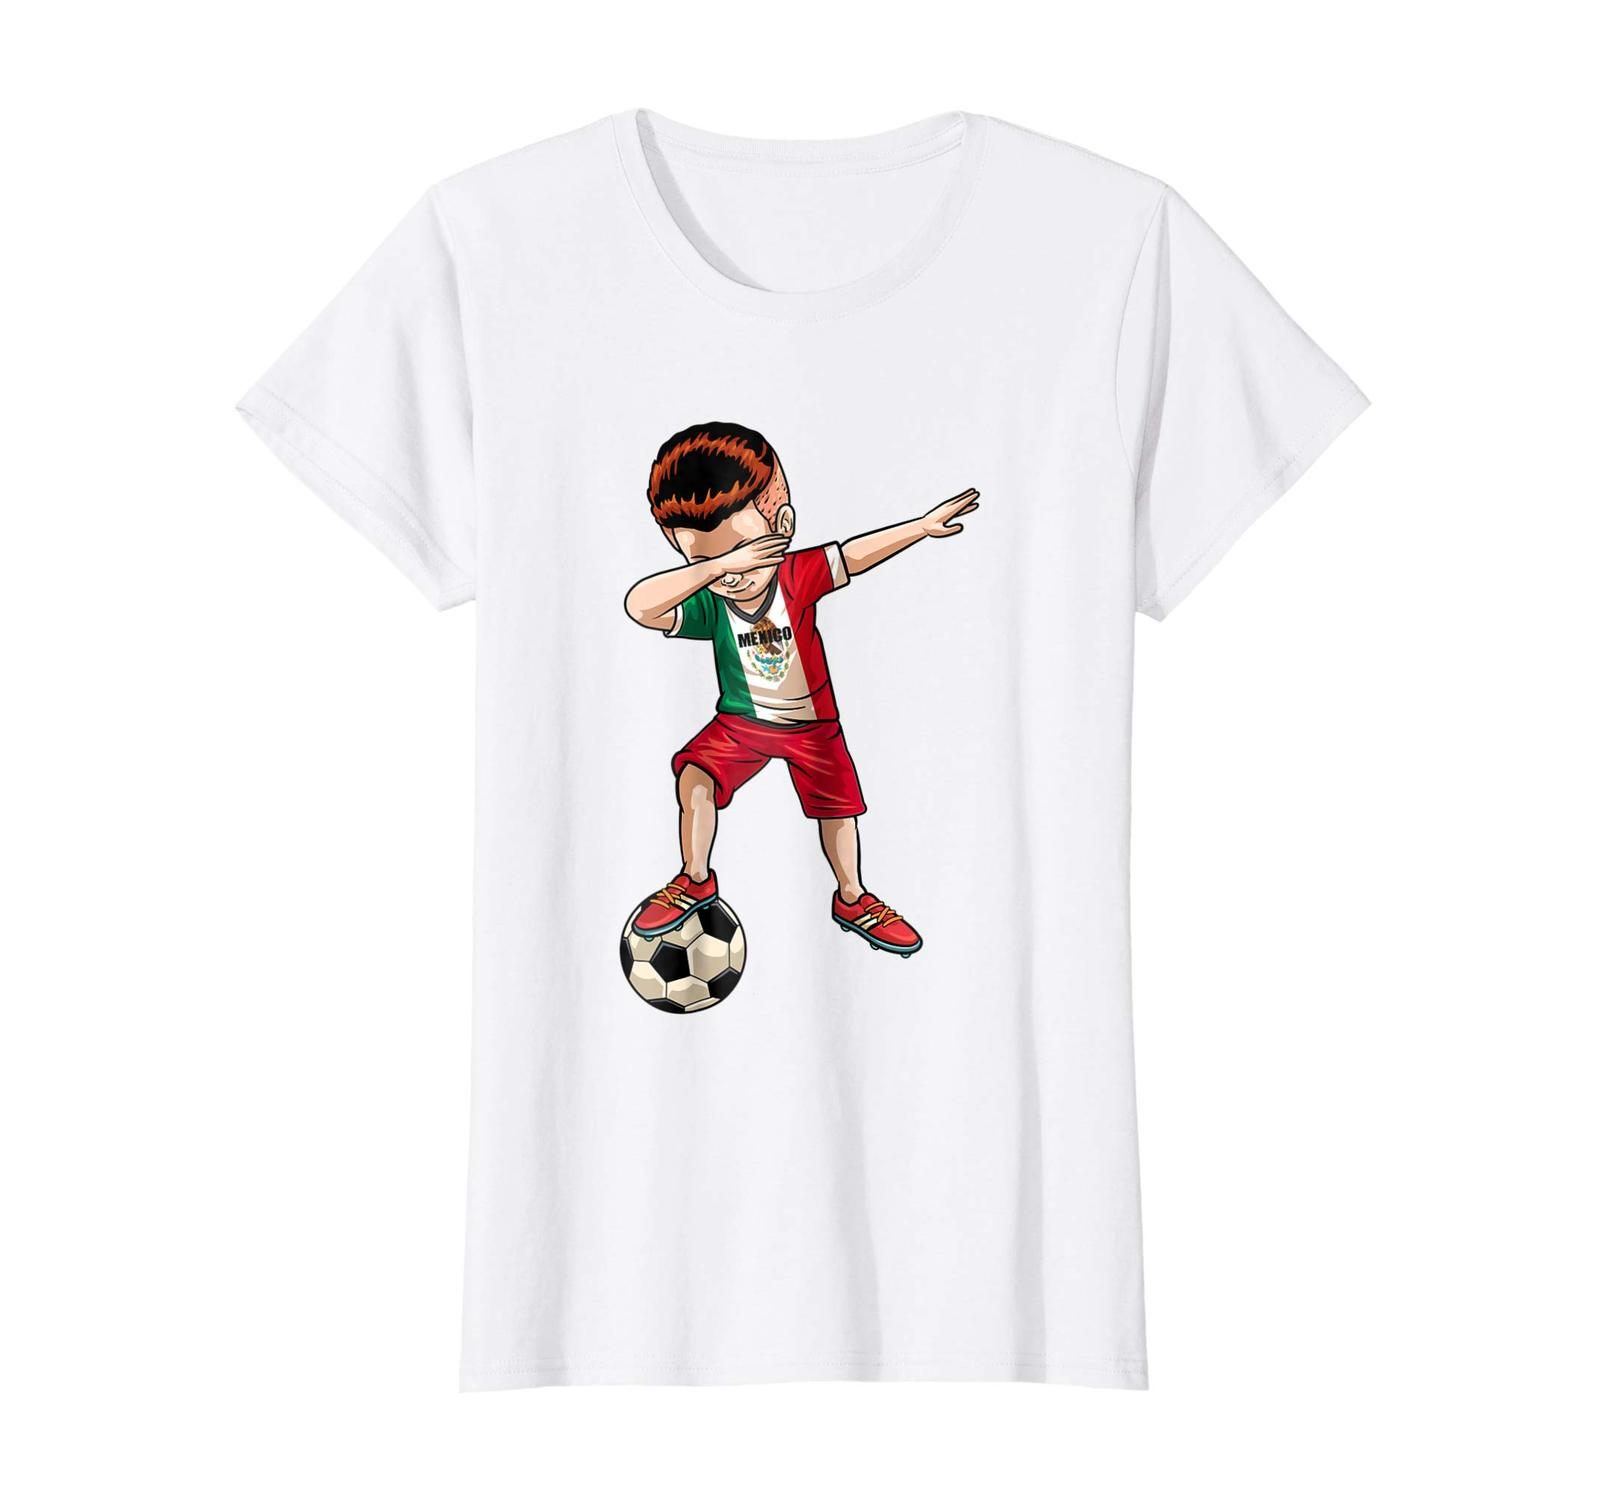 6896c379717 Brother Shirts - Dabbing Soccer Boy Mexico and 50 similar items.  A1zdawwgrcl. cla 7c2140 2000 7c81rb8sefw6l.png 7c0 0 2140 2000 0.0 0.0  2140.0 2000.0